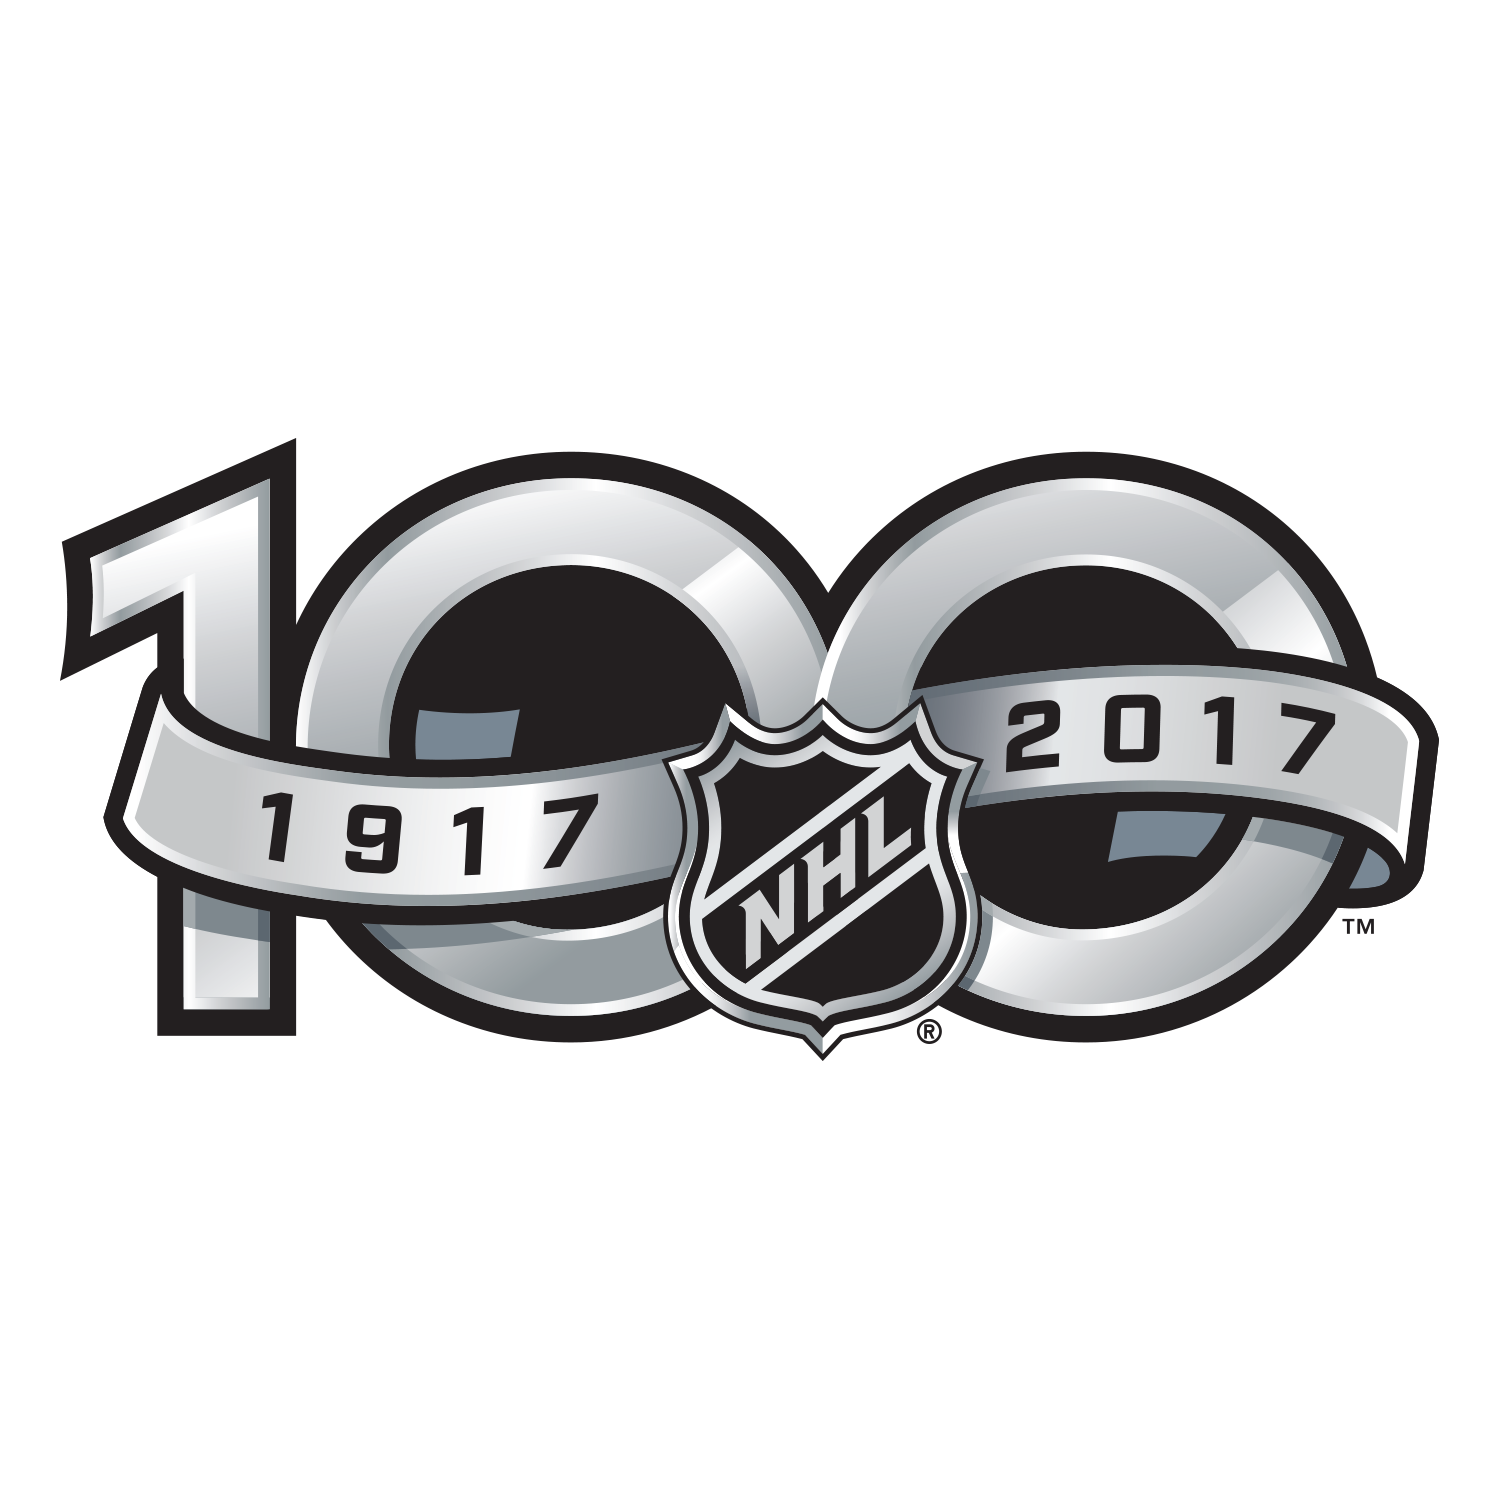 NHL Centennial Anniversary Comes to Smashville This Weekend